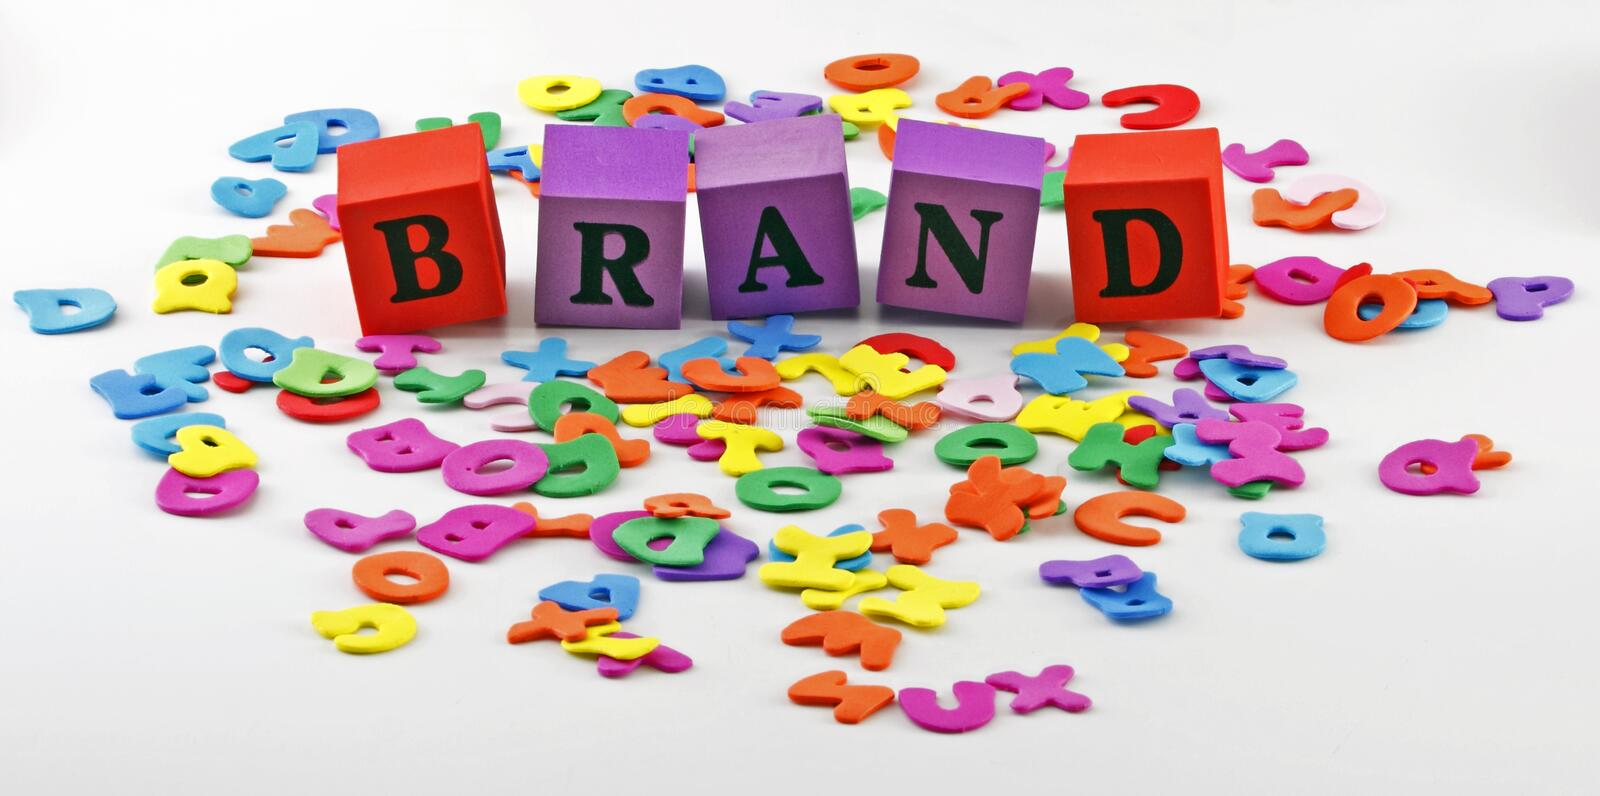 Brand word letters stock photos